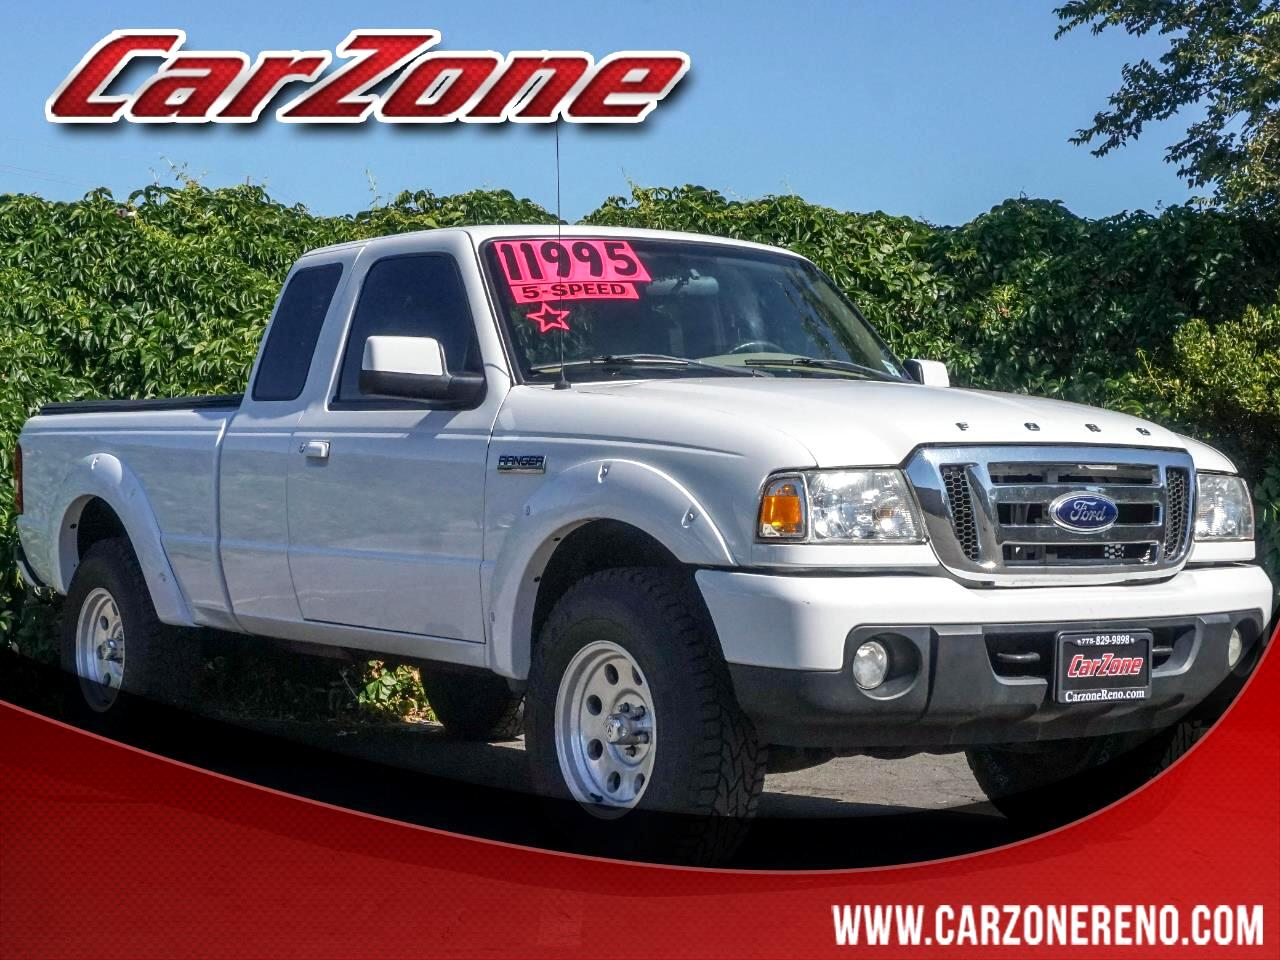 2008 Ford Ranger 4WD 2dr SuperCab 126